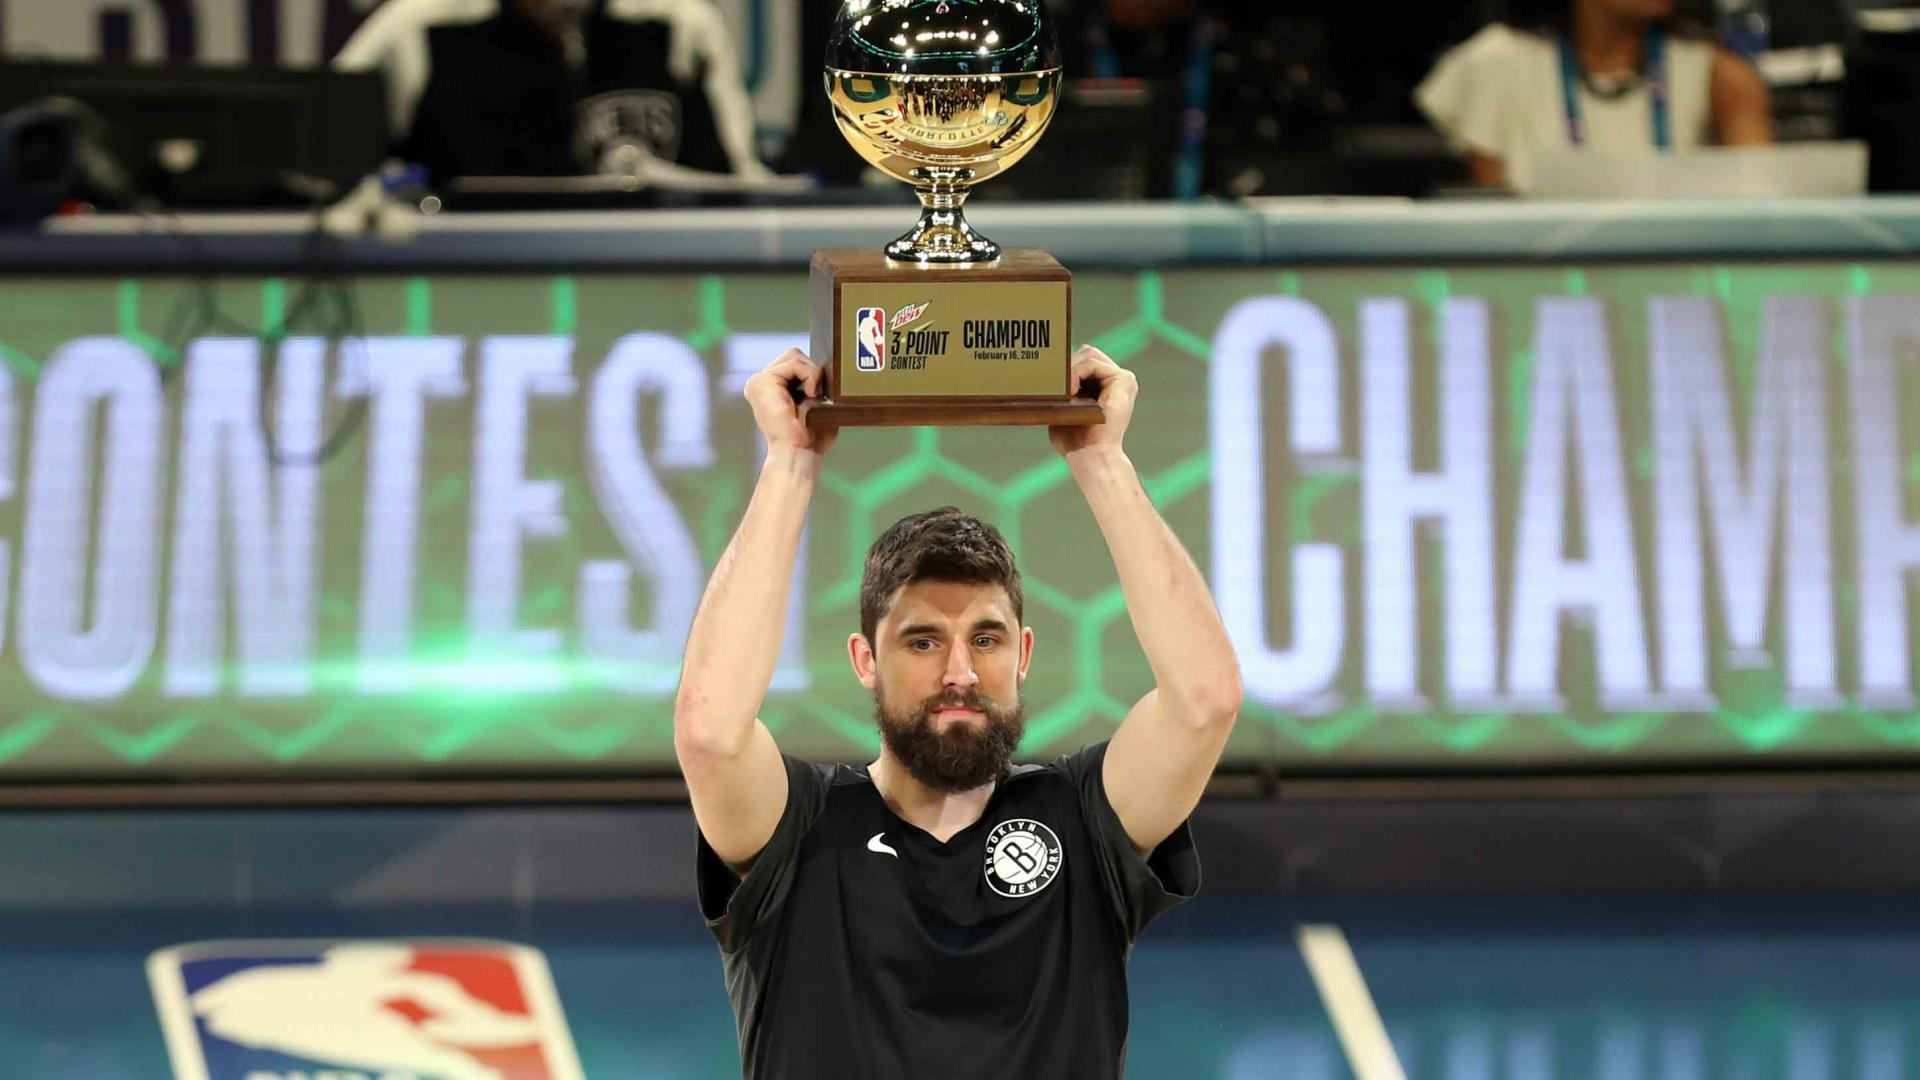 Brooklyn Nets Joe Harris received the 3-point championship trophy after defeated Stephen Curry in the finals. (AP Photo/ NBA.com)